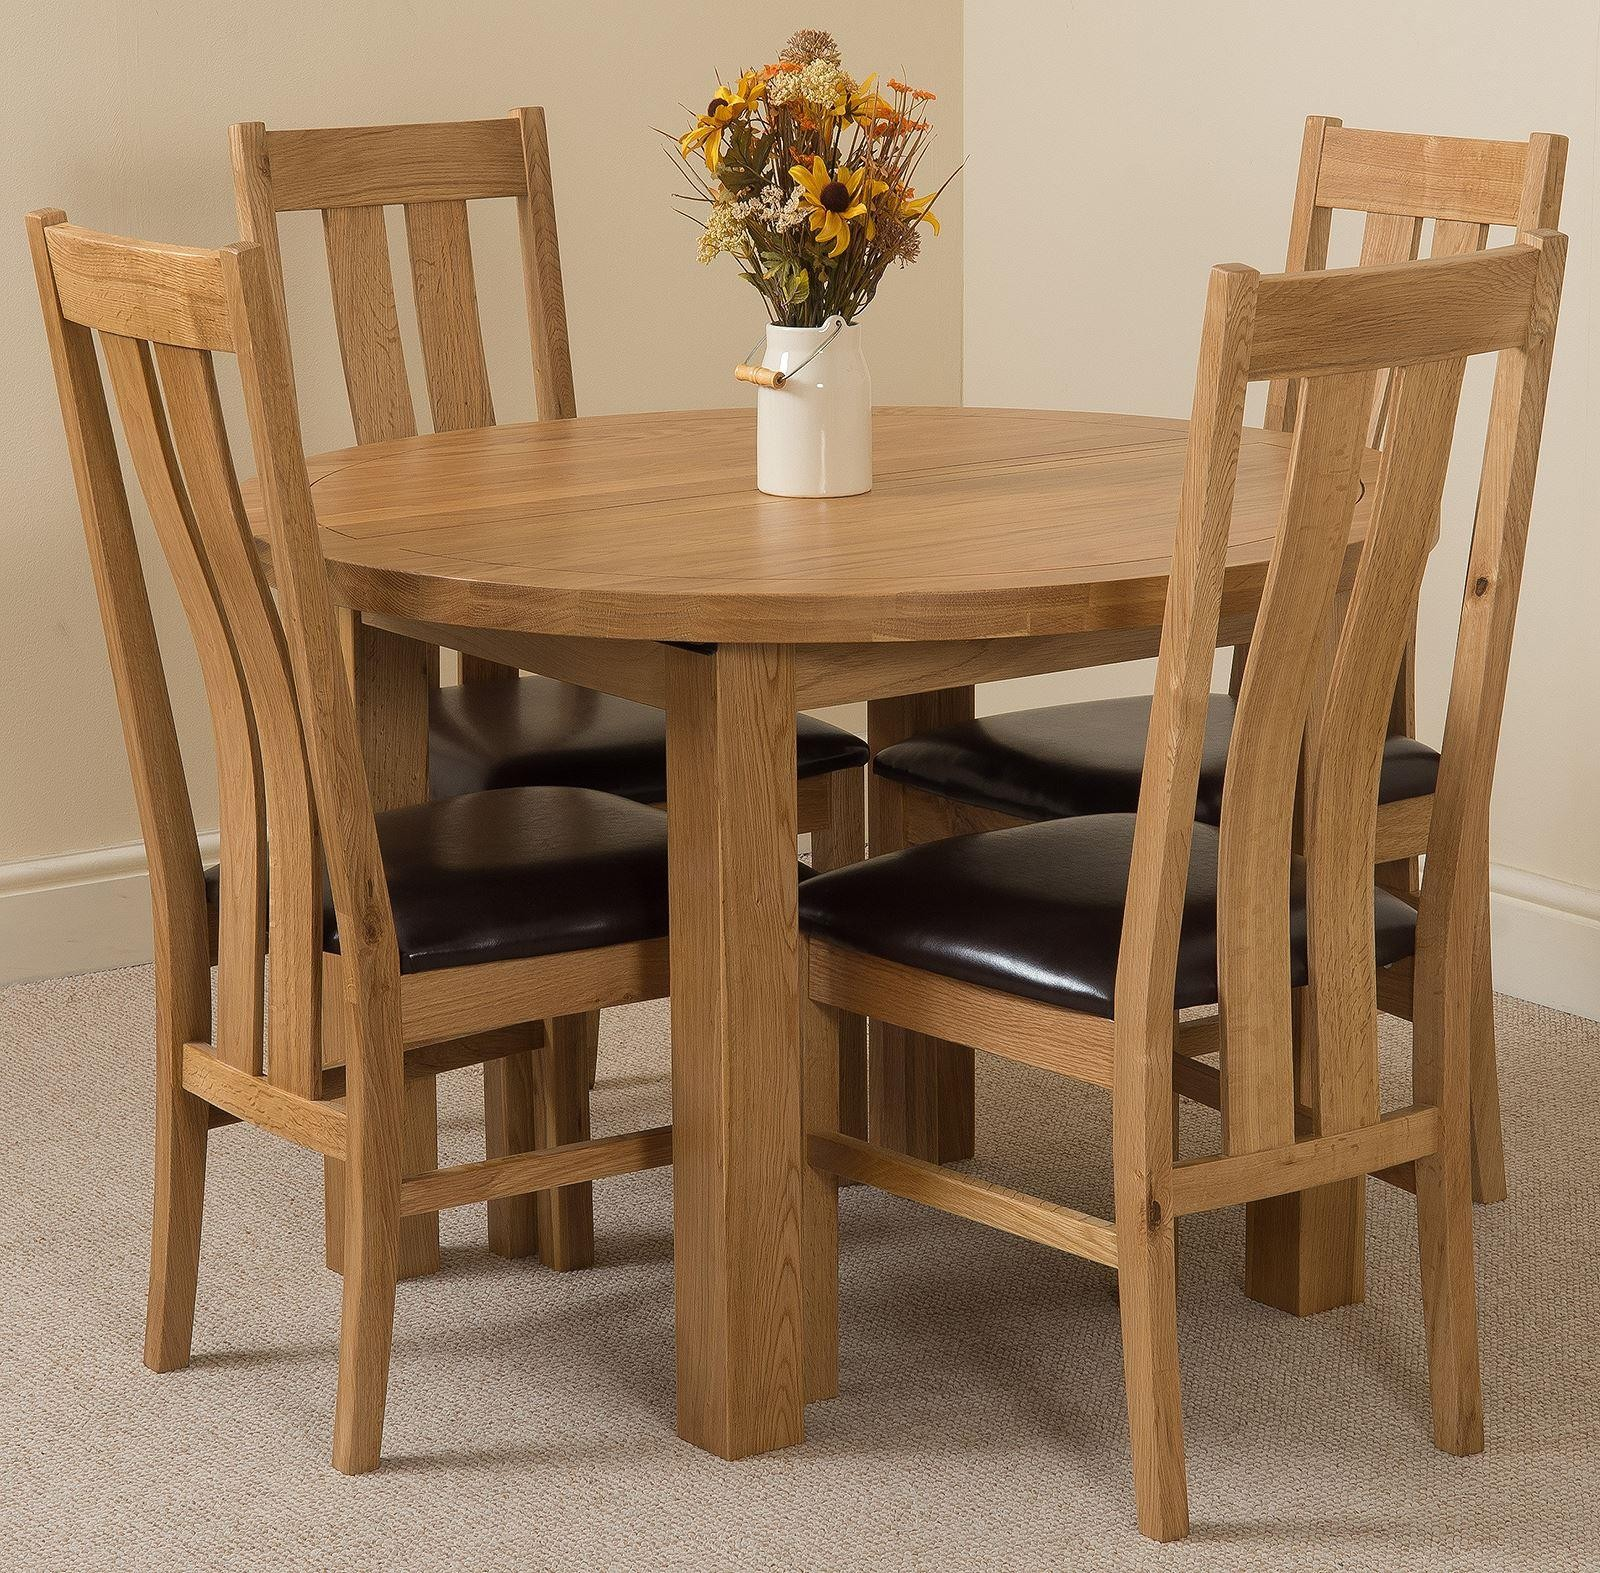 Edmonton Solid Oak Extending Oval Dining Table With 4 Princeton Solid Oak Dining Chairs [Light Oak and Brown Leather]